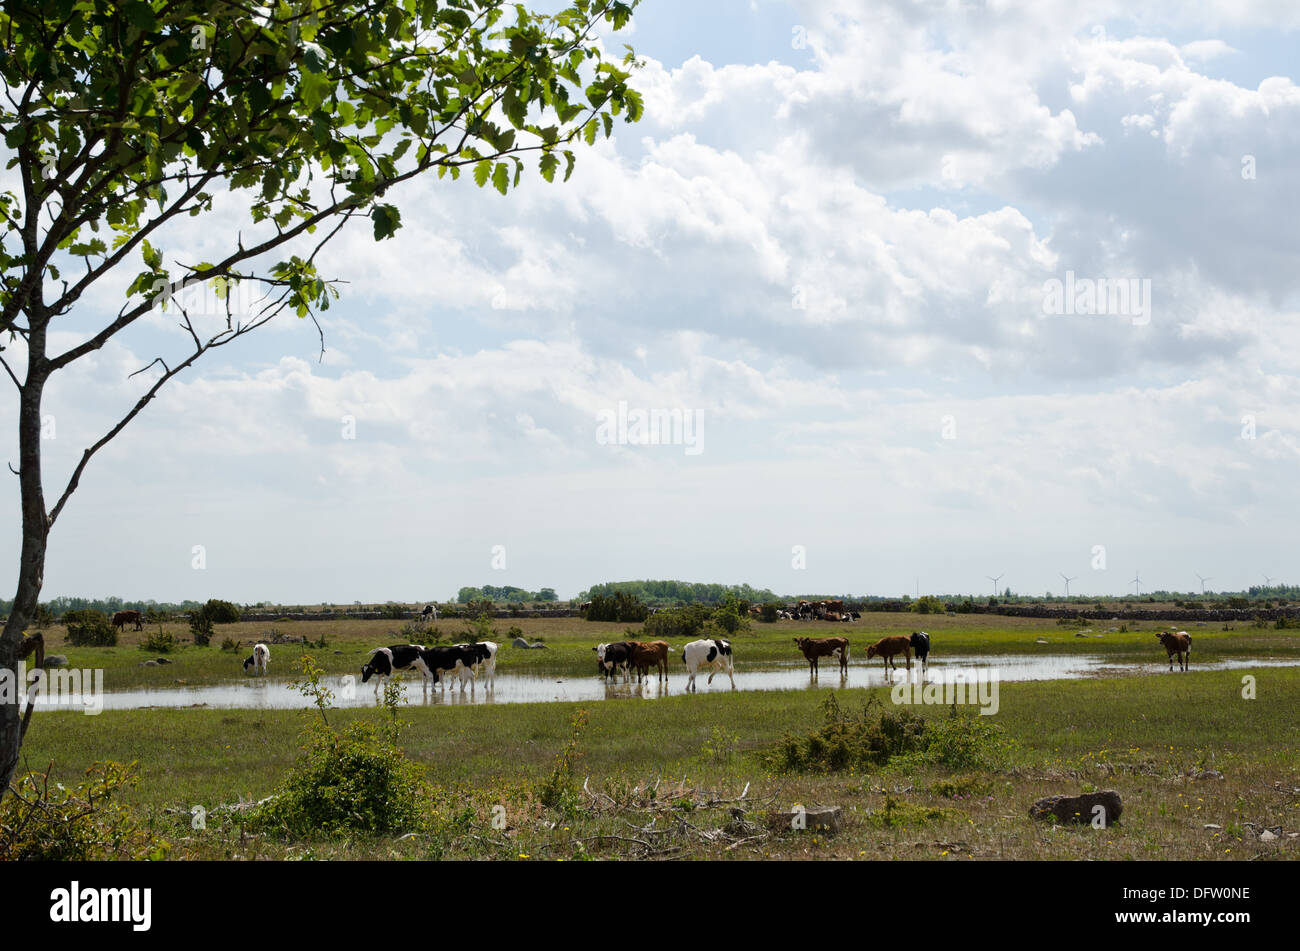 Cattle in water - Stock Image